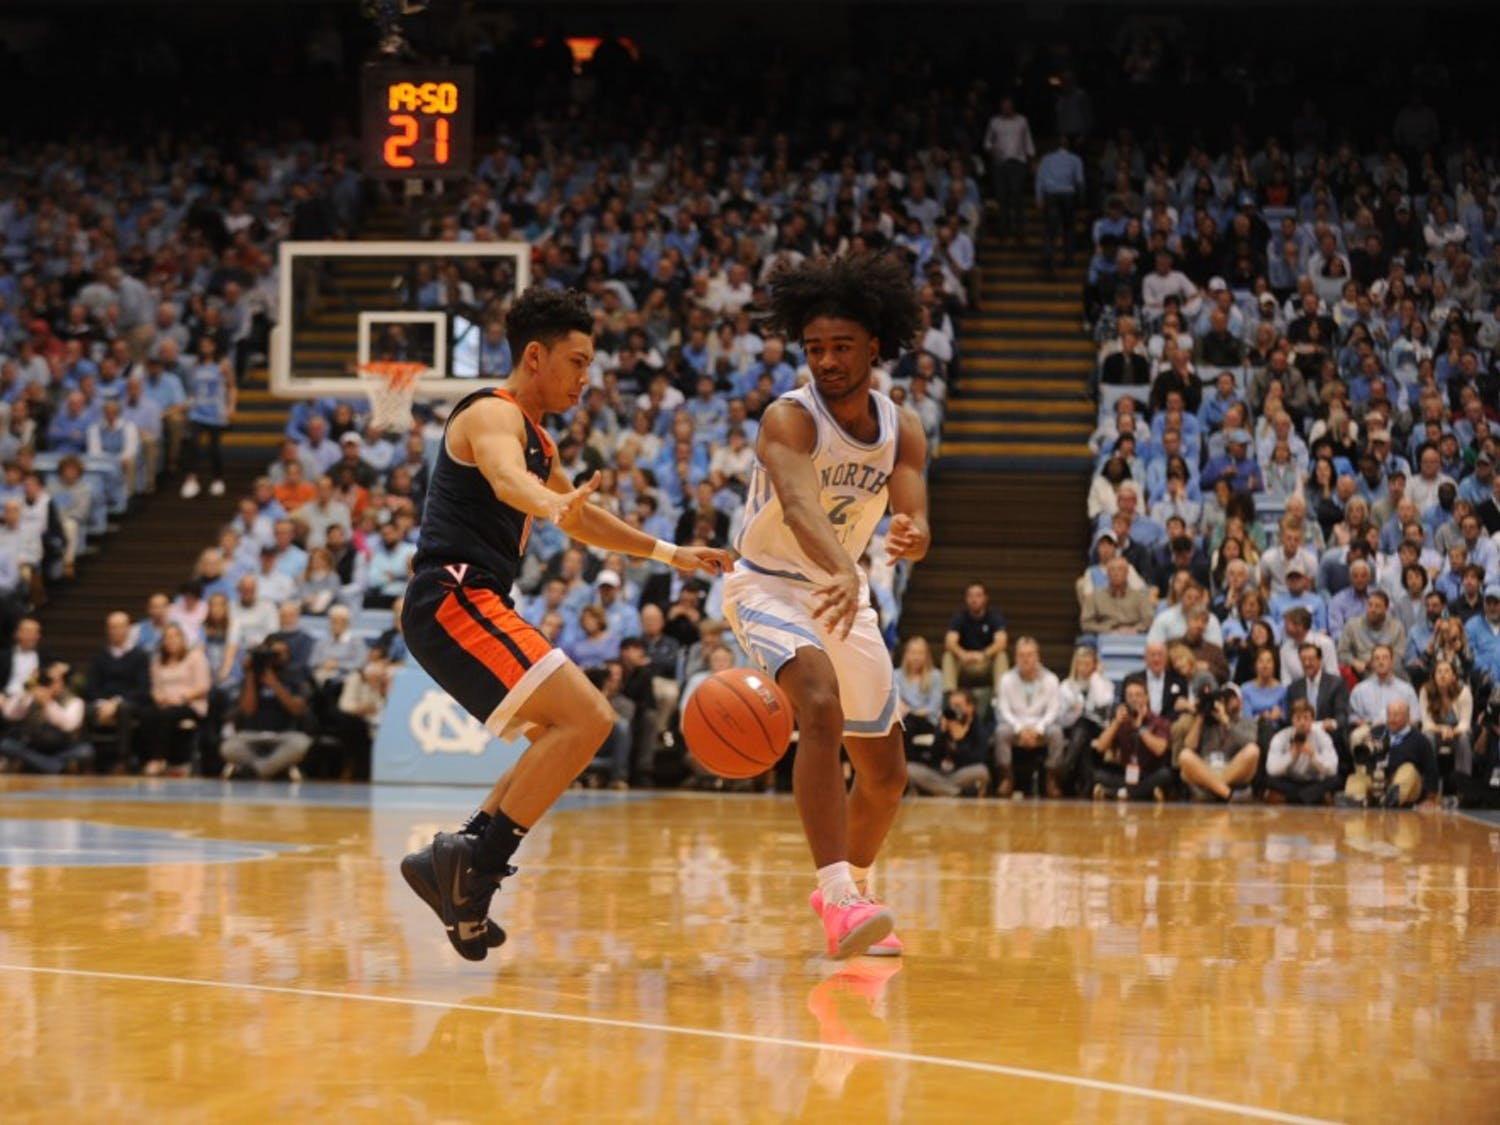 UNC first-year guard Coby White (2) drives past Virgina first-year guard Kihei Clark (0) on Monday, Feb. 11, 2019 in the Smith Center. White scored 17 points.